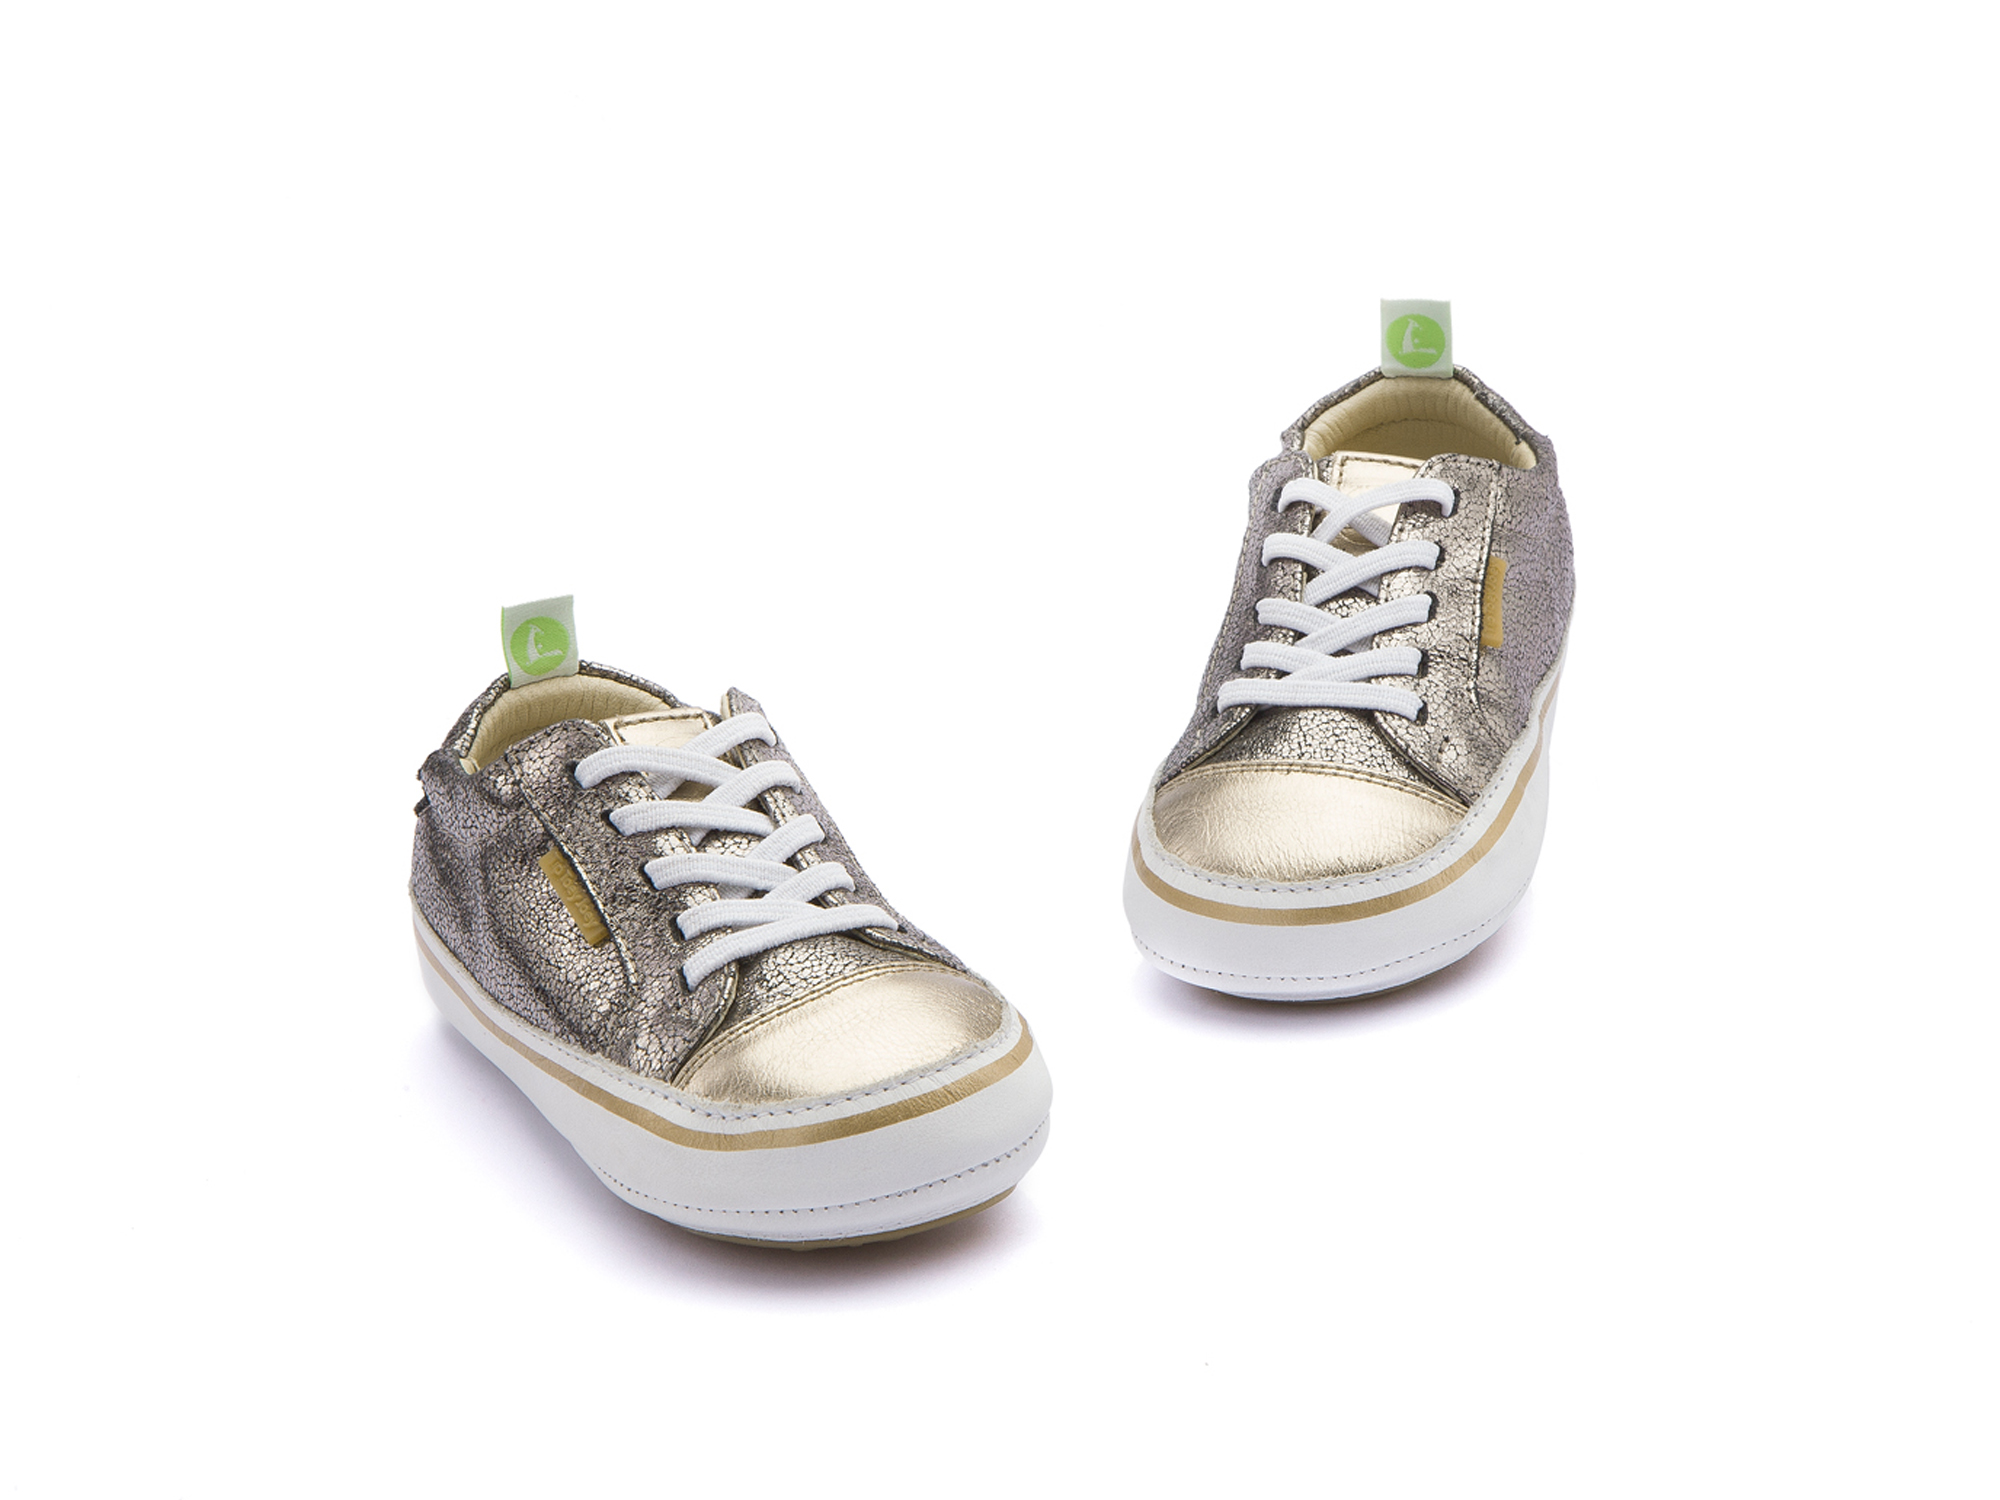 Tênis Funky Old Silver Shine/ Gold Sparkle/ White Baby 0 à 2 anos - 2